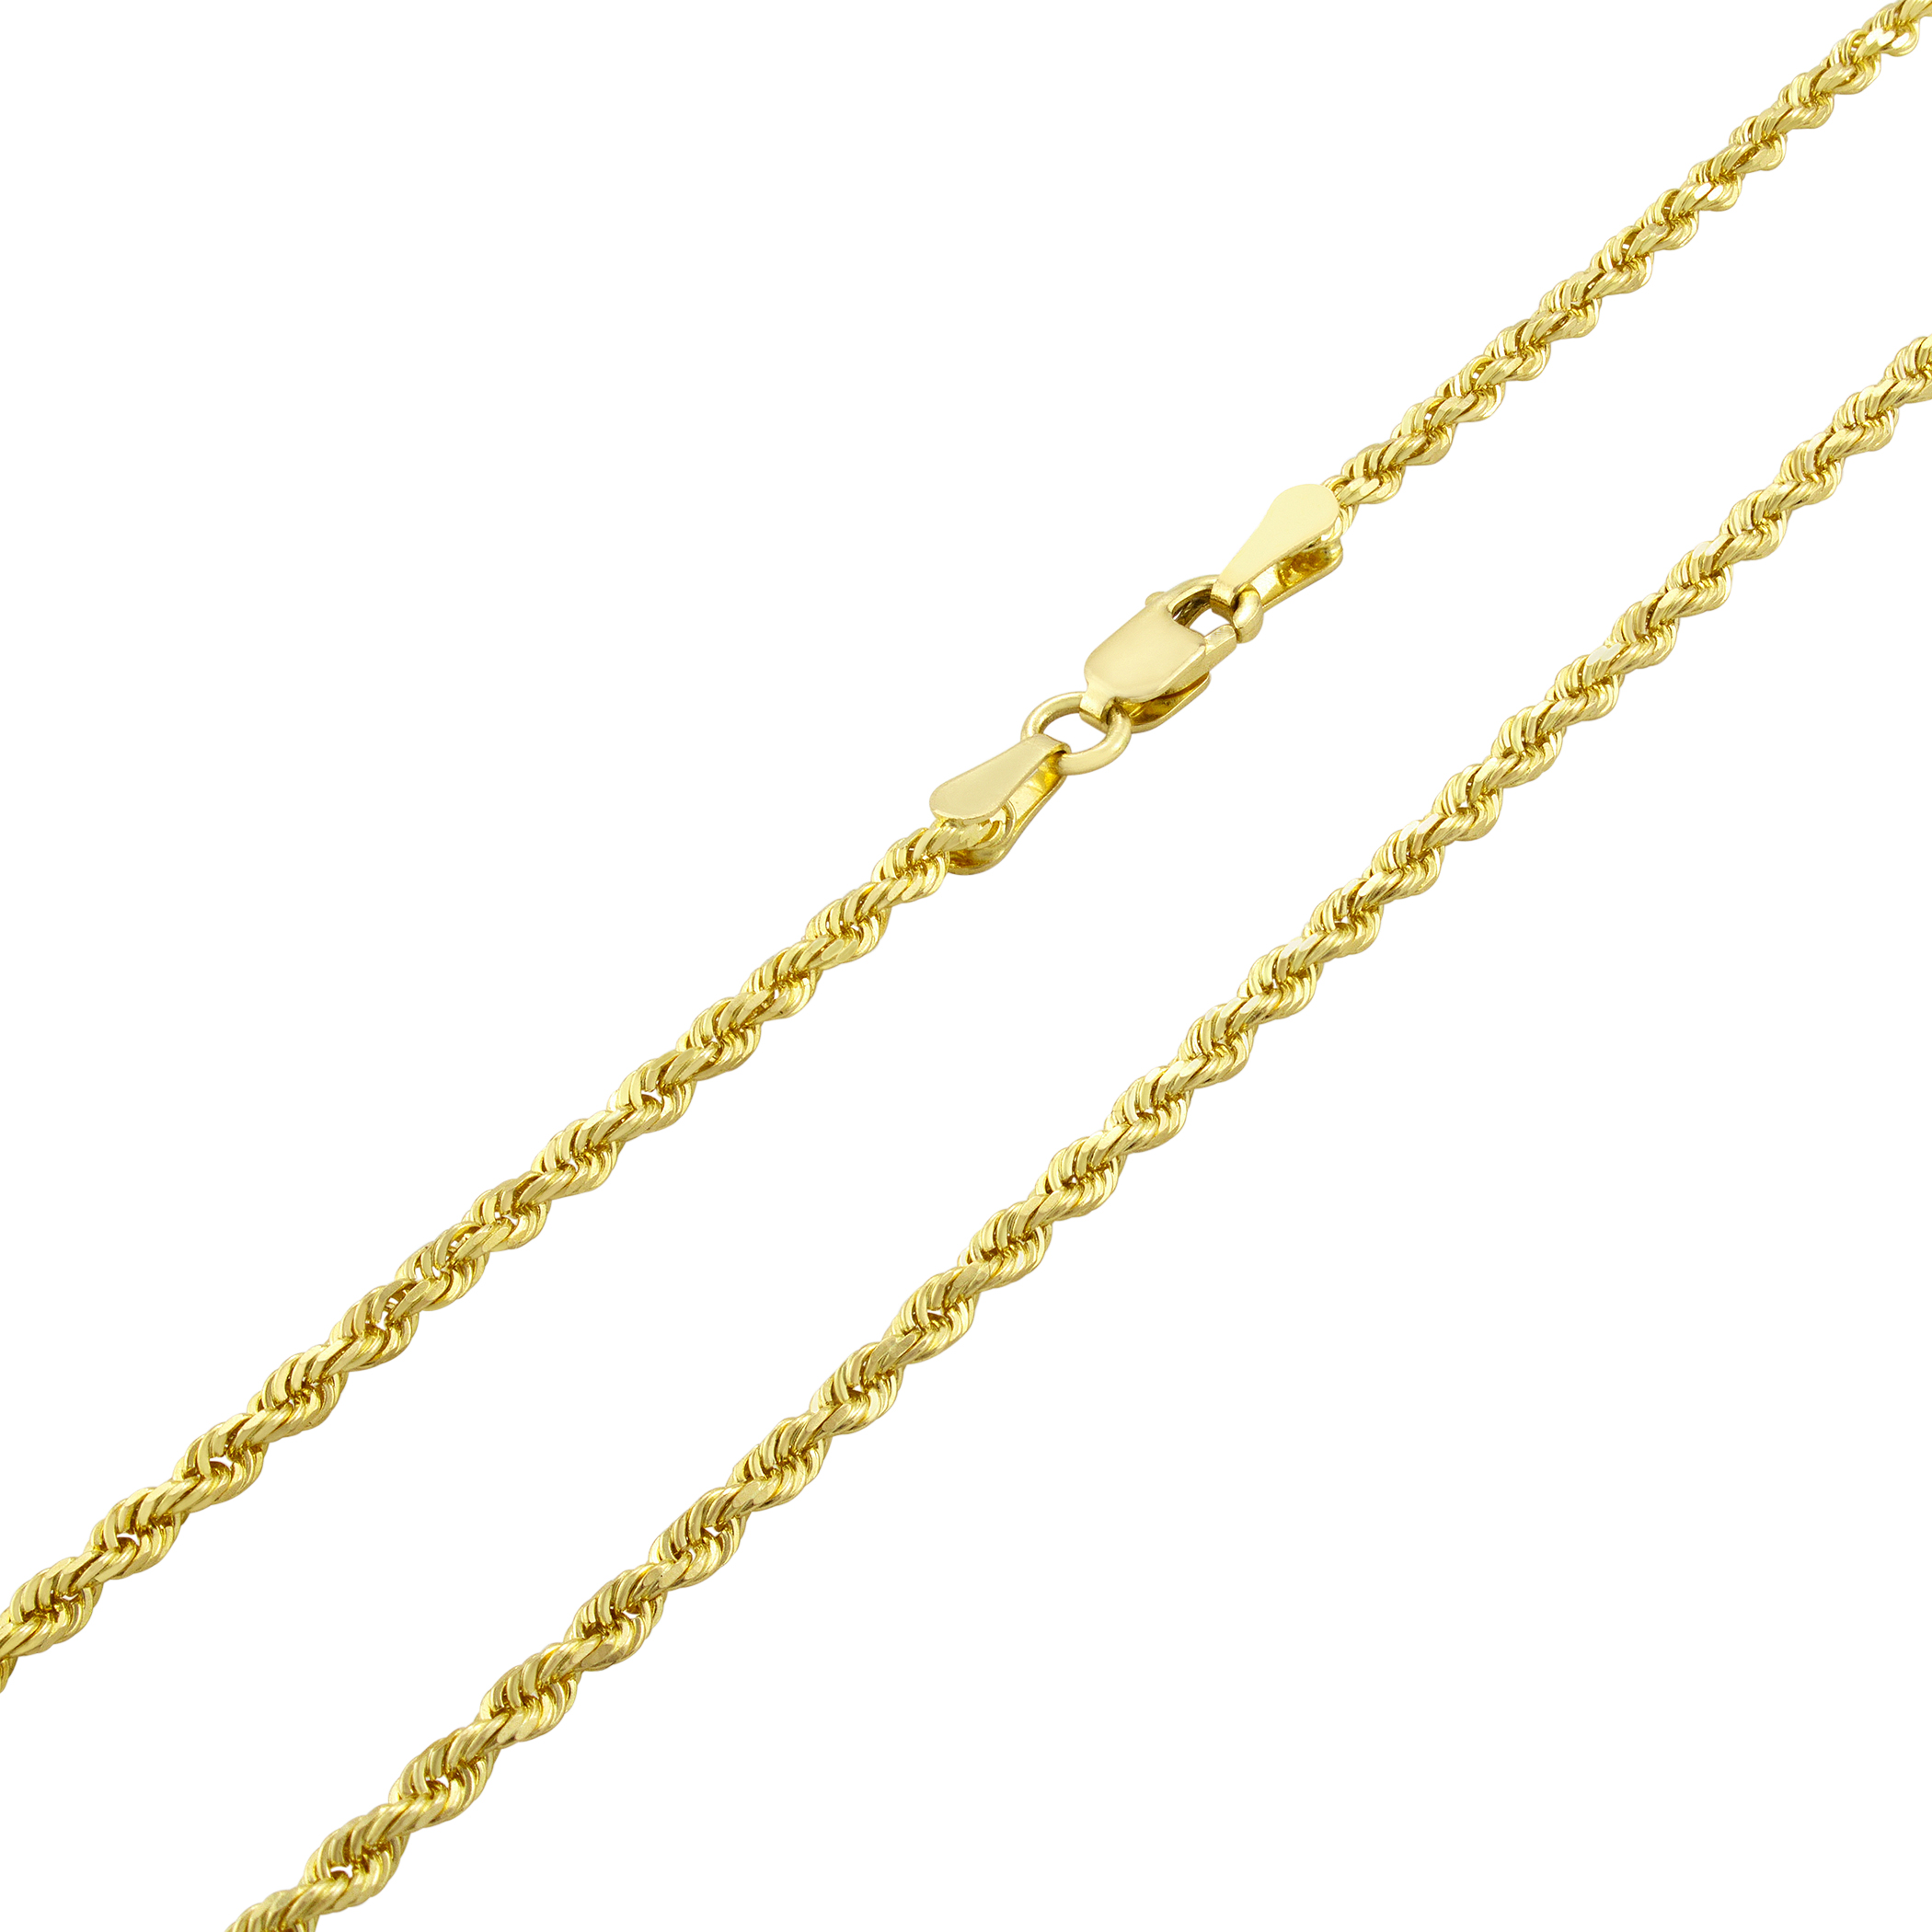 Real-14K-Yellow-Gold-2-5mm-Diamond-Cut-Rope-Chain-Link-Bracelet-Anklet-7-034-8-034-9-034 thumbnail 16